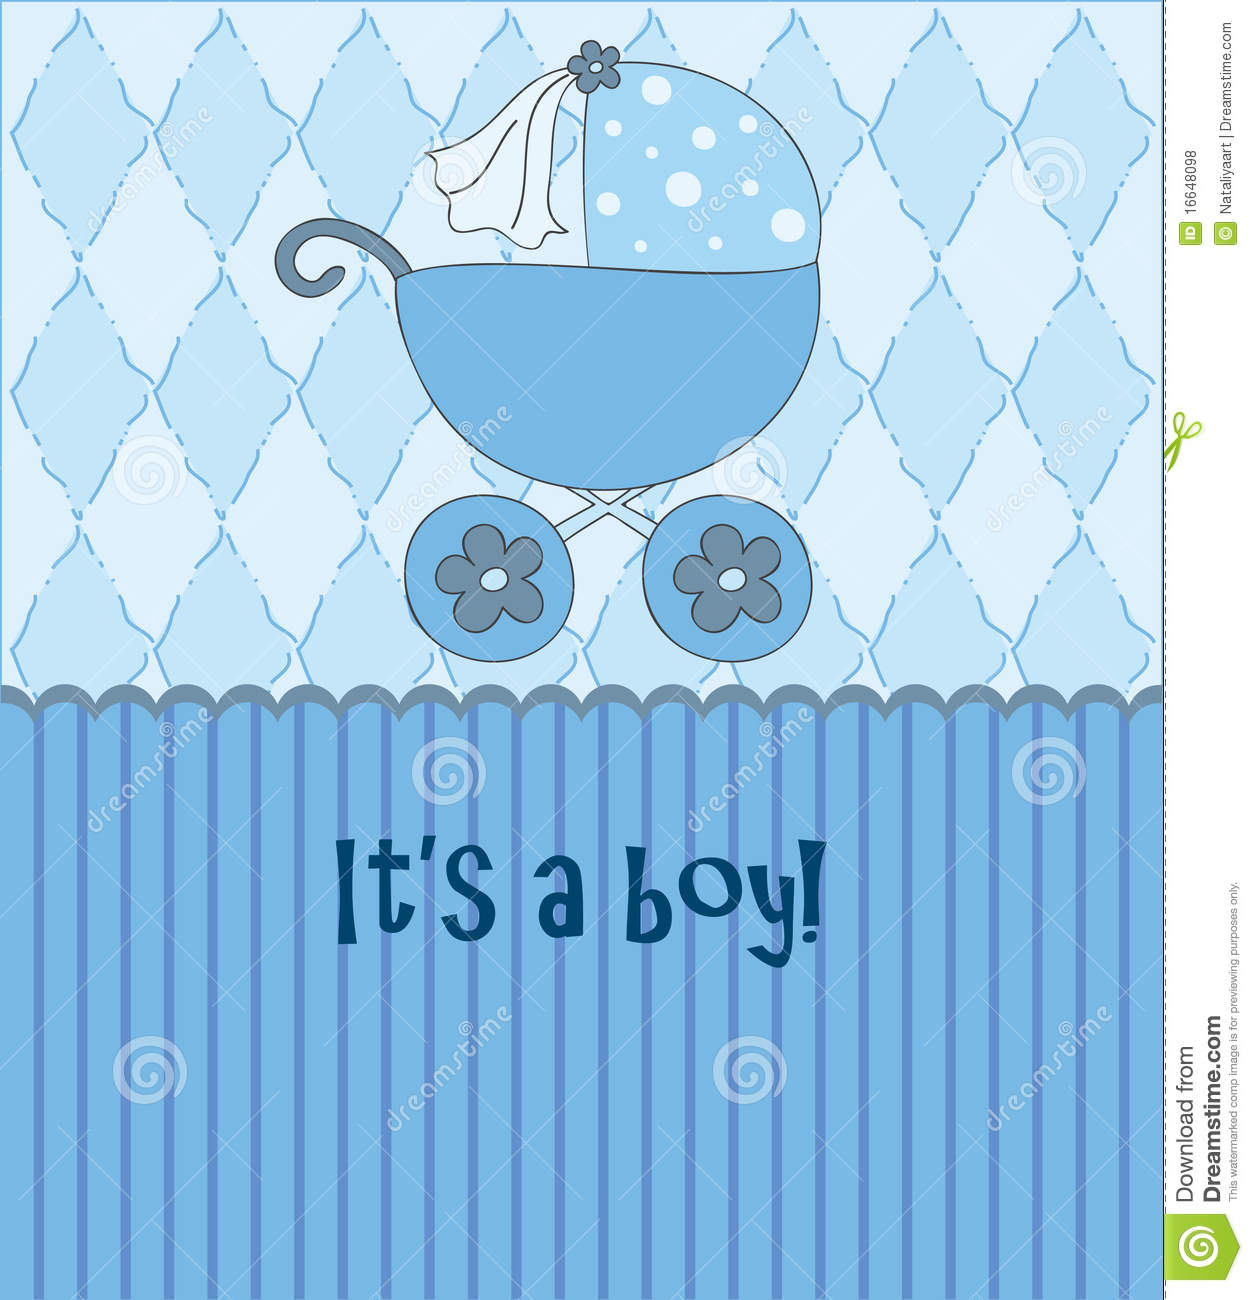 Free Baby Shower Invitation as nice invitations example